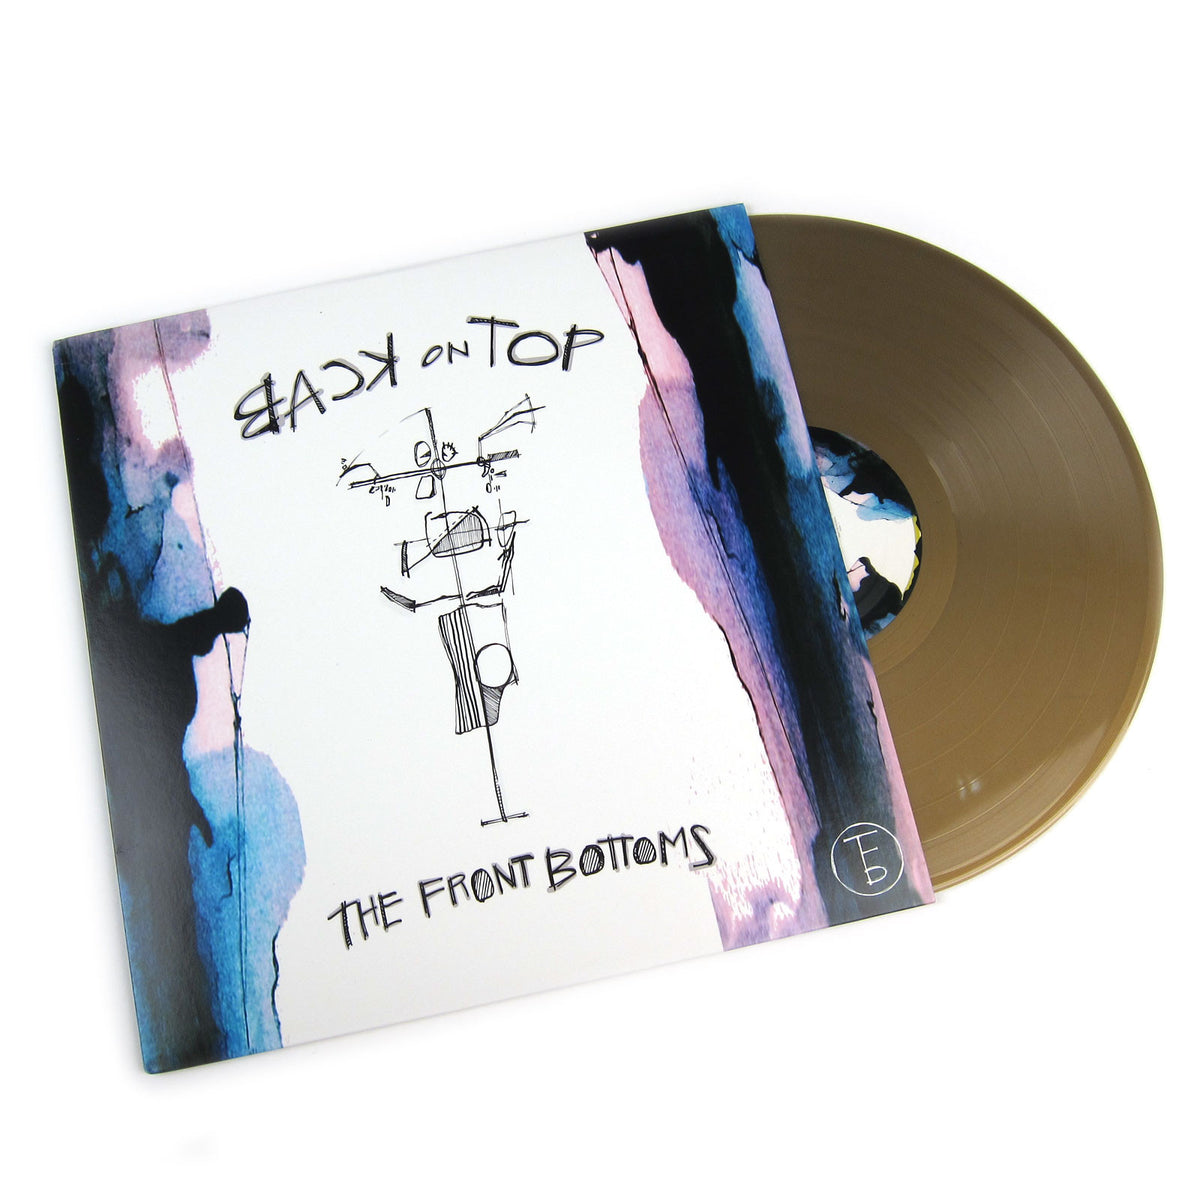 Front Bottoms: Back On Top (Indie Exclusive Colored Vinyl) Vinyl LP